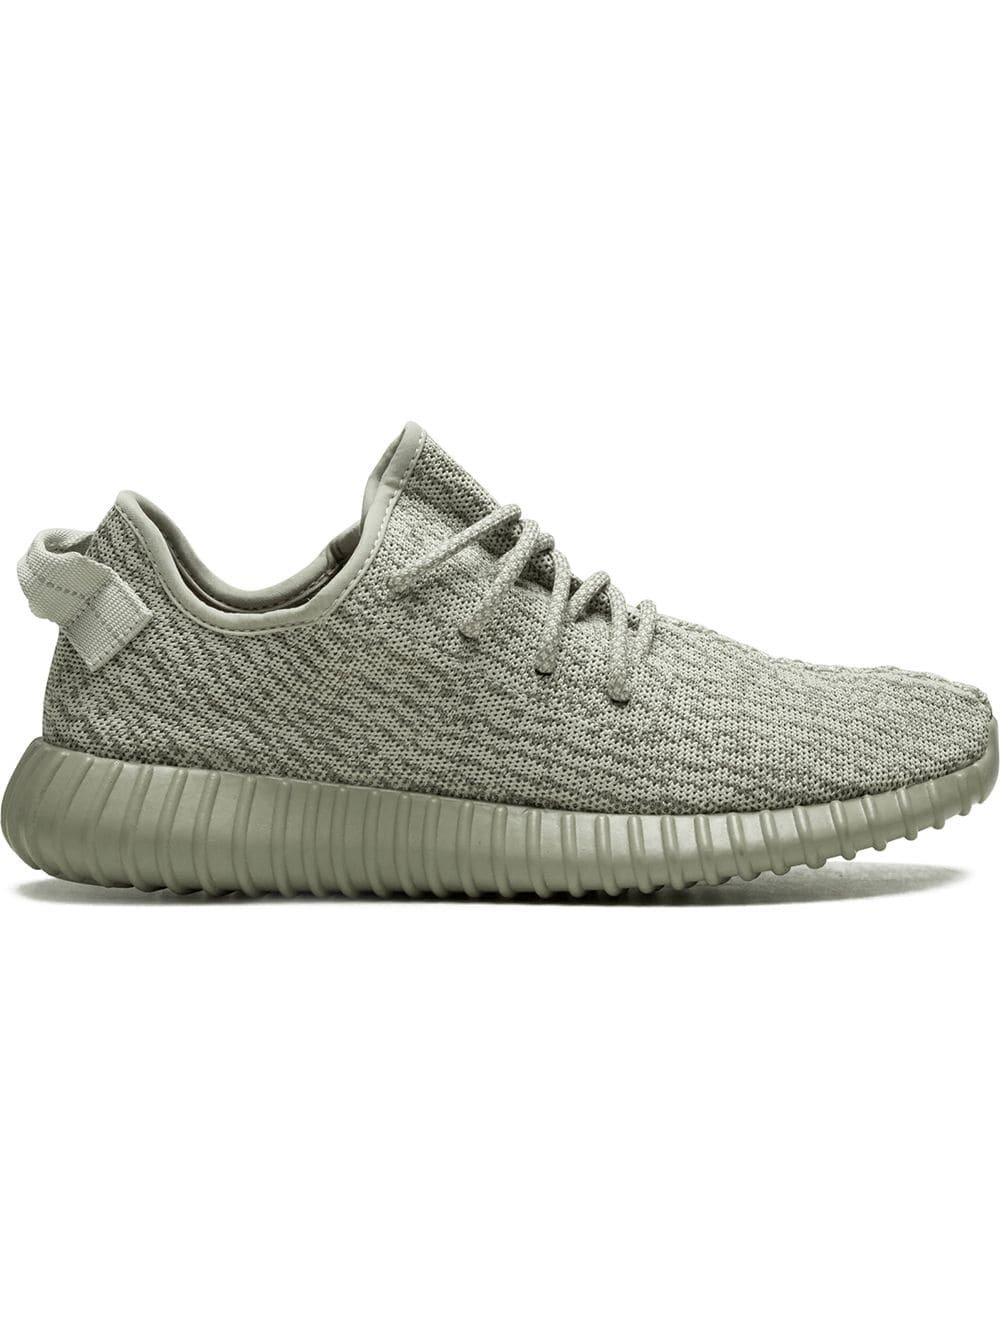 Adidas YEEZY Baskets Yeezy Boost 350 - Farfetch